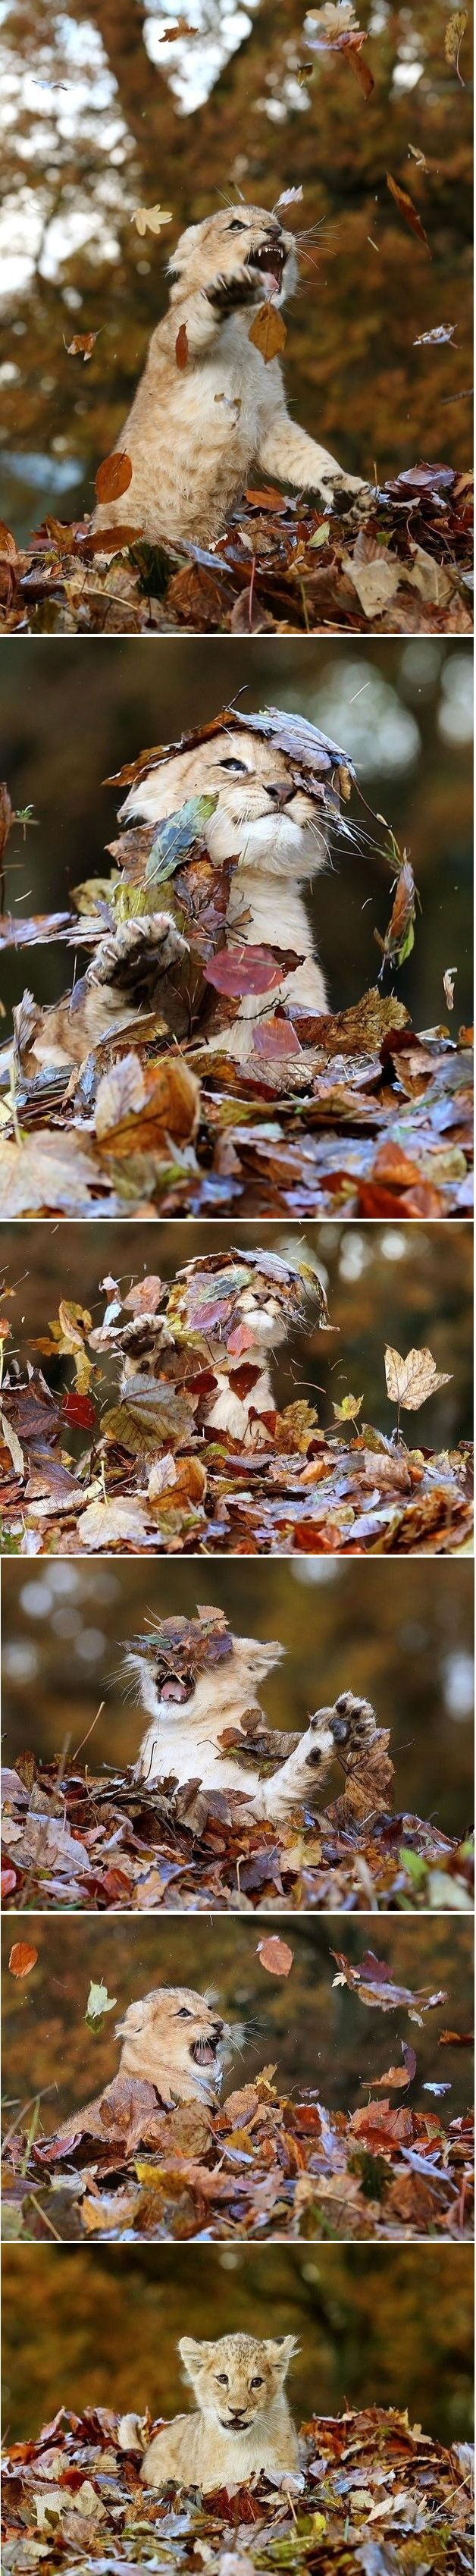 11 week old lion cub playing in leaves... Possibly the cutest thing I have ever seen>> EVERYBODY MUST SEE THIS CUTENESS!!! @judd2494 @rhirhipins @heyitsmoi